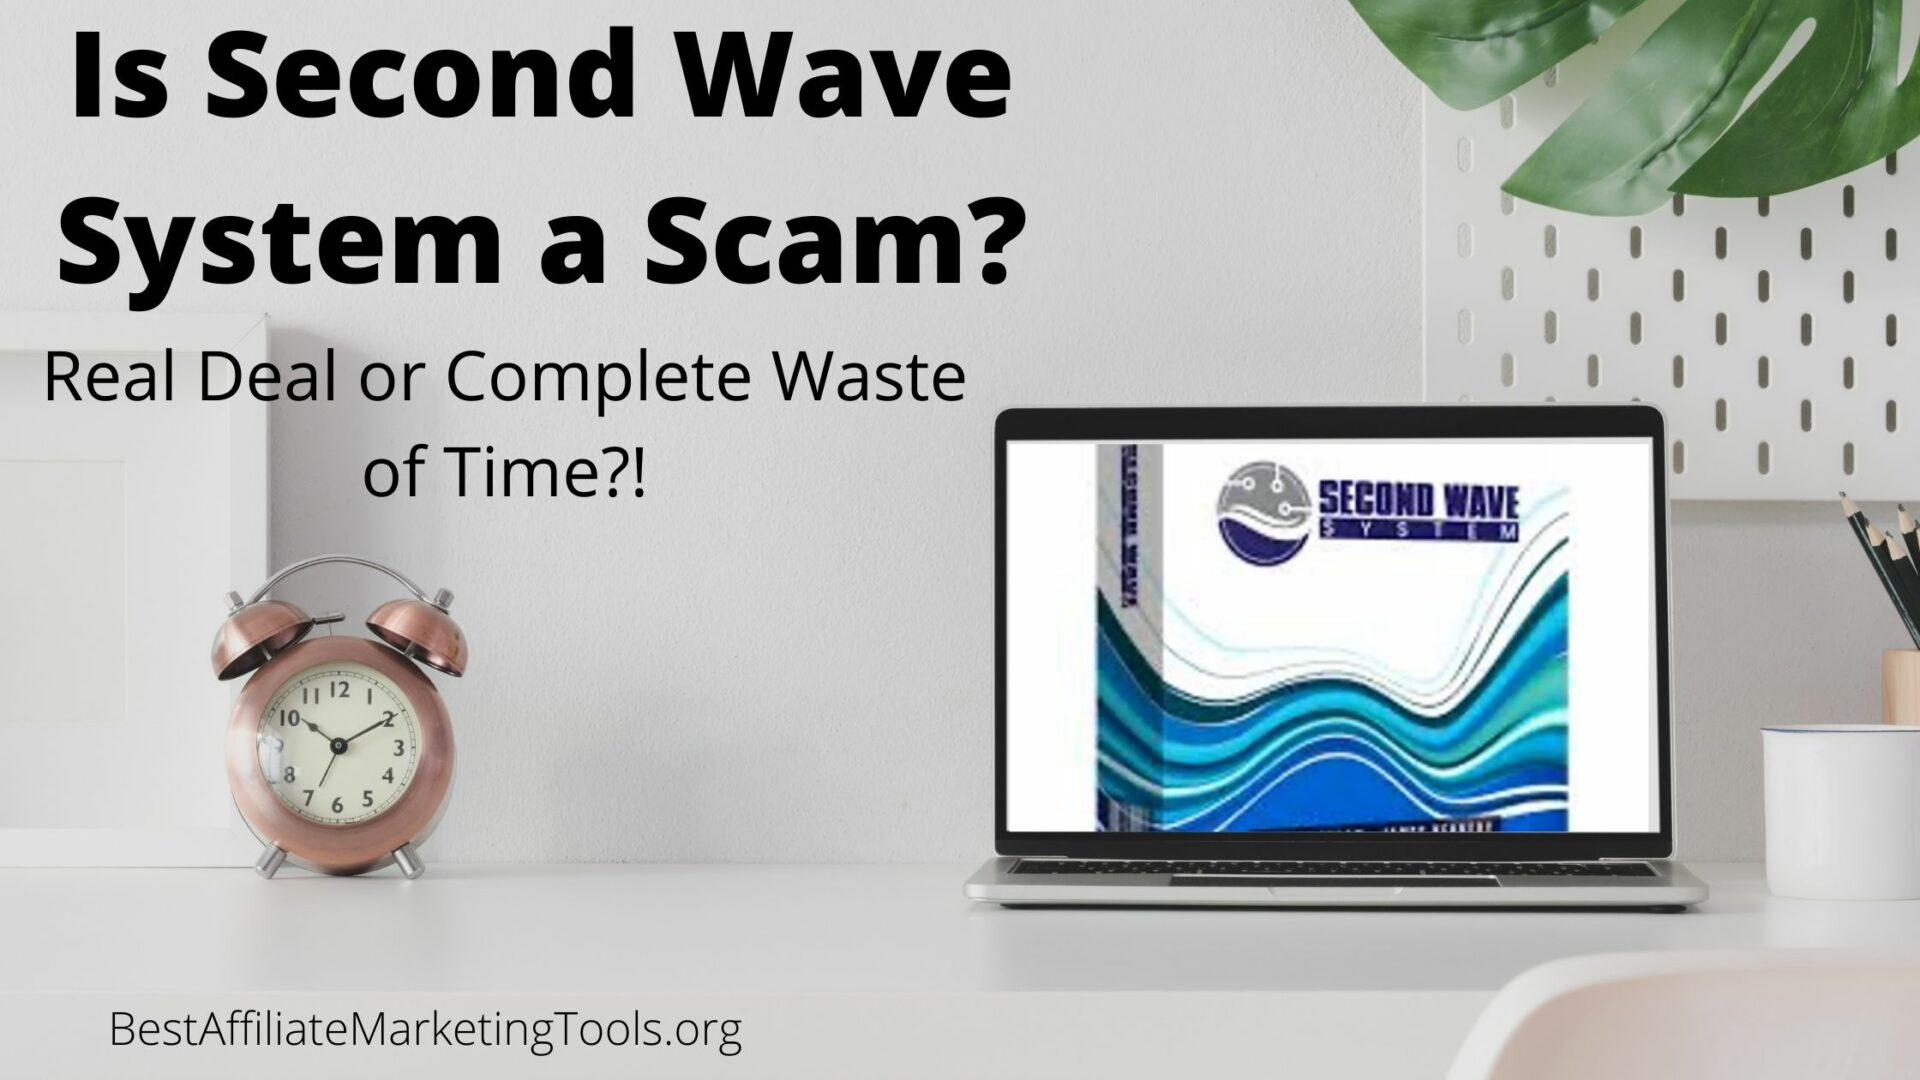 Is Second Wave System a Scam